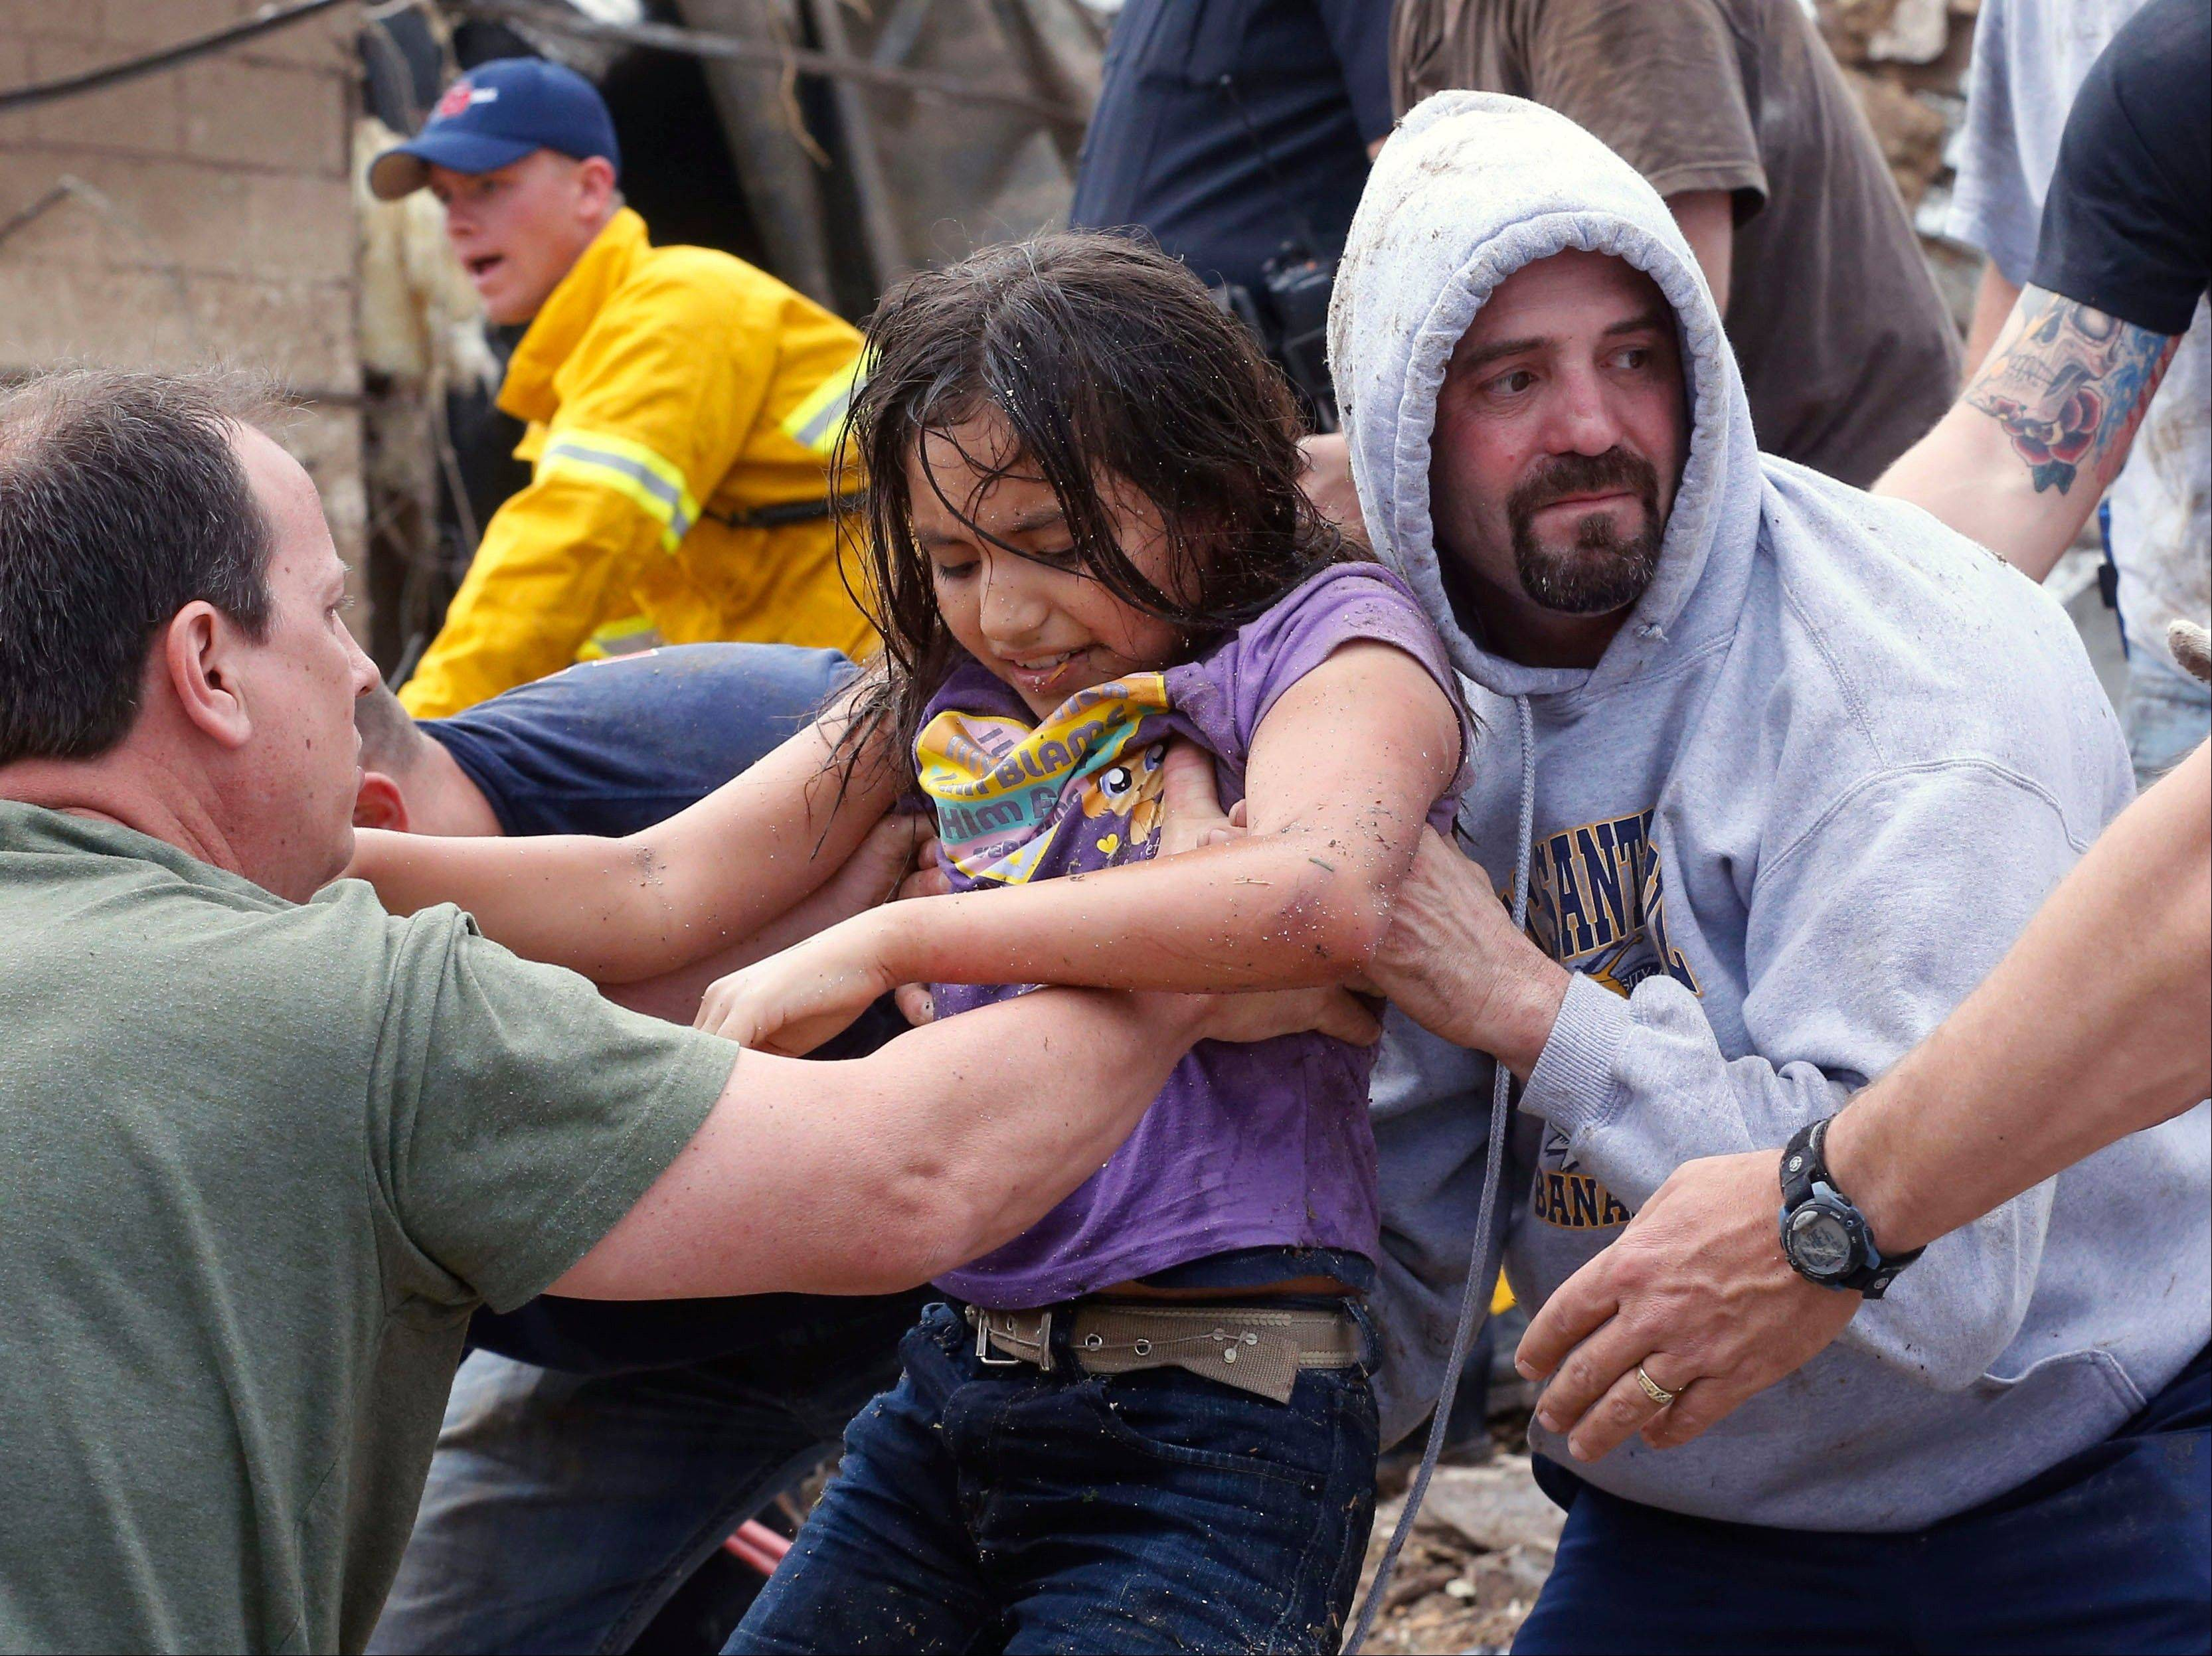 child is passed along a human chain of people after being pulled from the rubble of the Plaza Towers Elementary School in Moore, Okla., and passed along a human chain of rescuers Monday, May 20, 2013. A tornado as much as a mile (1.6 kilometers) wide with winds up to 200 mph (320 kph) roared through the Oklahoma City suburbs Monday, flattening entire neighborhoods, setting buildings on fire and landing a direct blow on an elementary school.